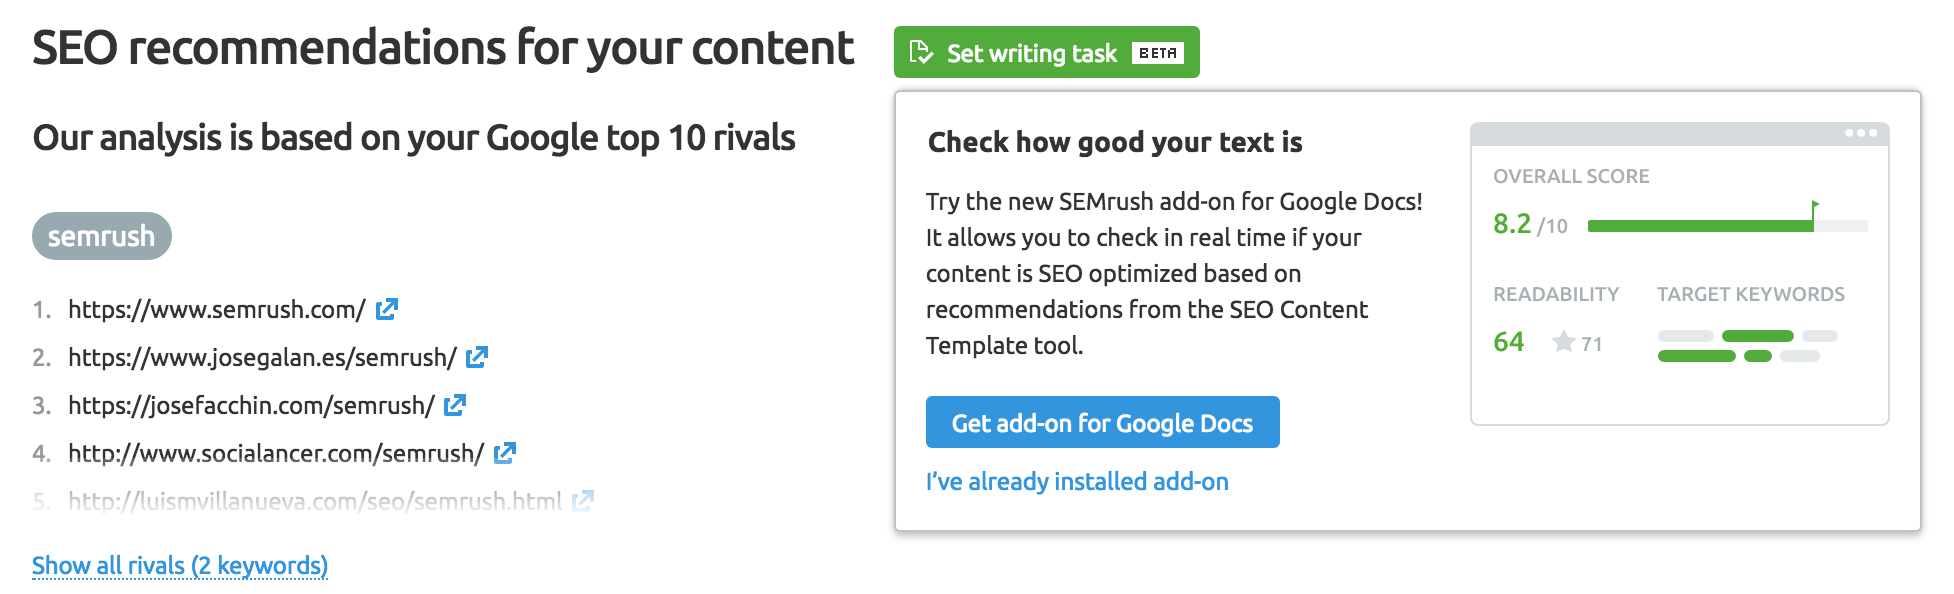 Pasos para instalar el Semrush Writing Assistant